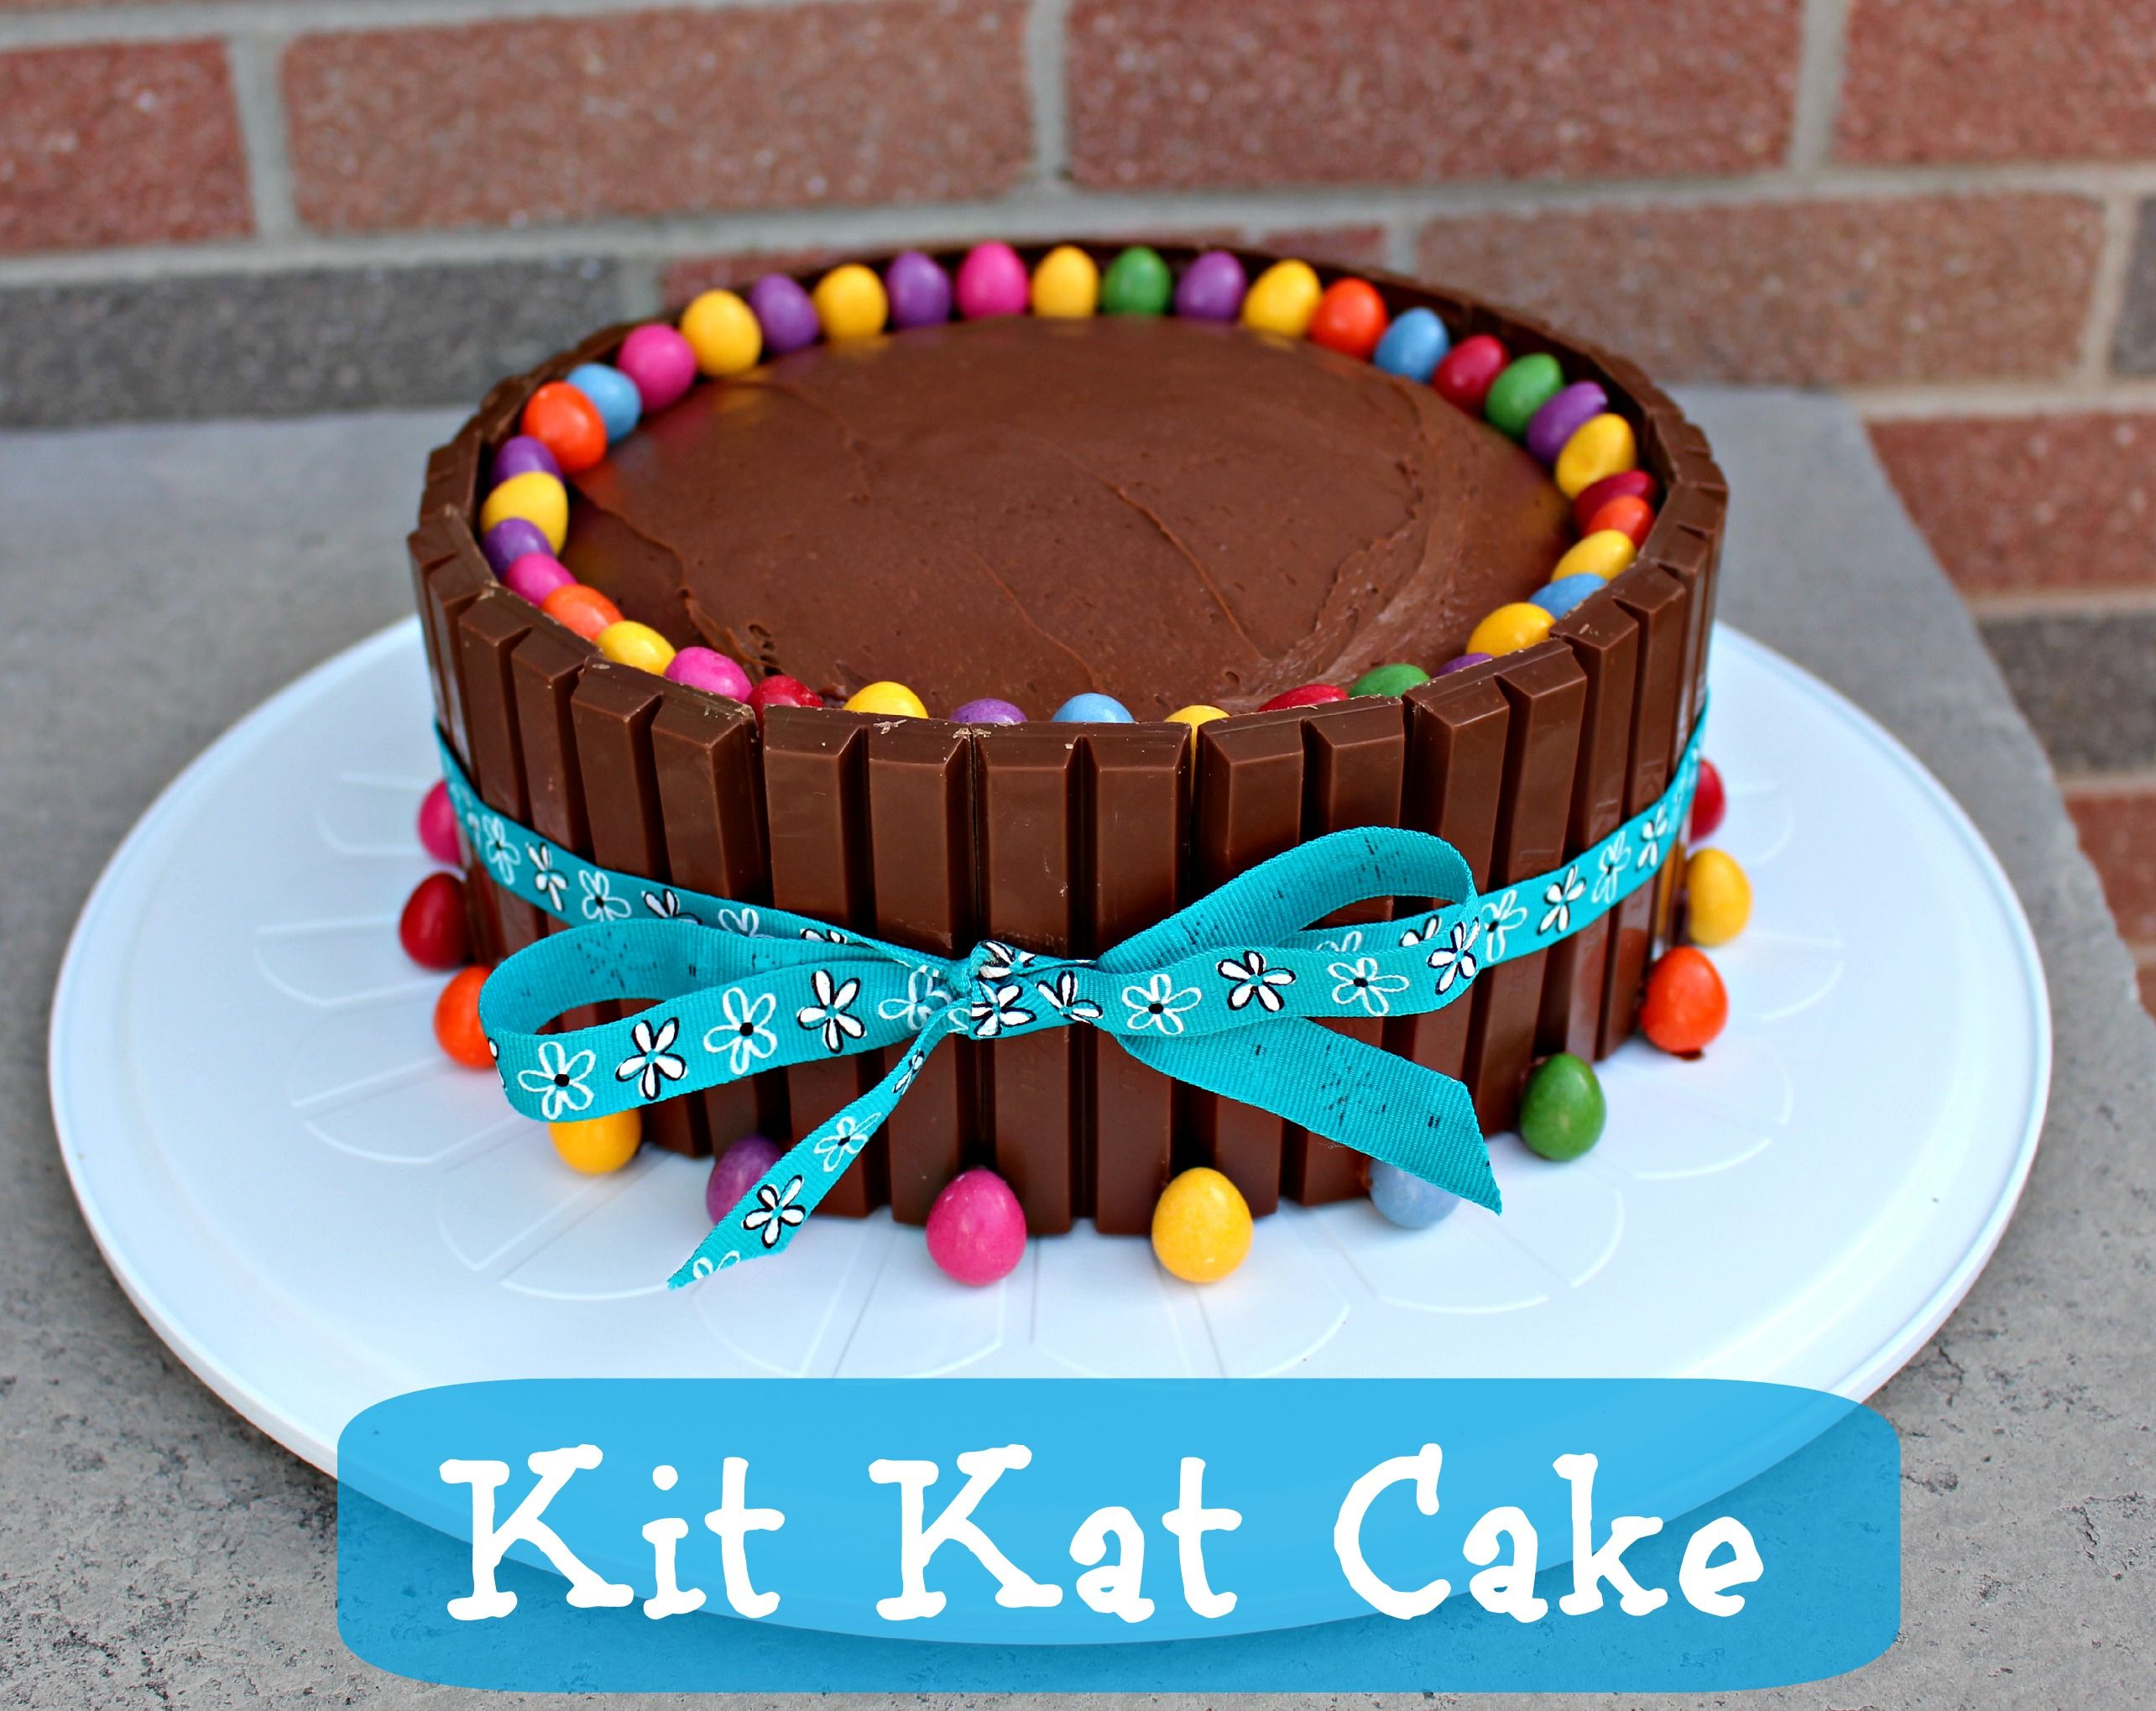 Kit Kat Cake Recipe Cake birthday, Birthday cakes and Teen